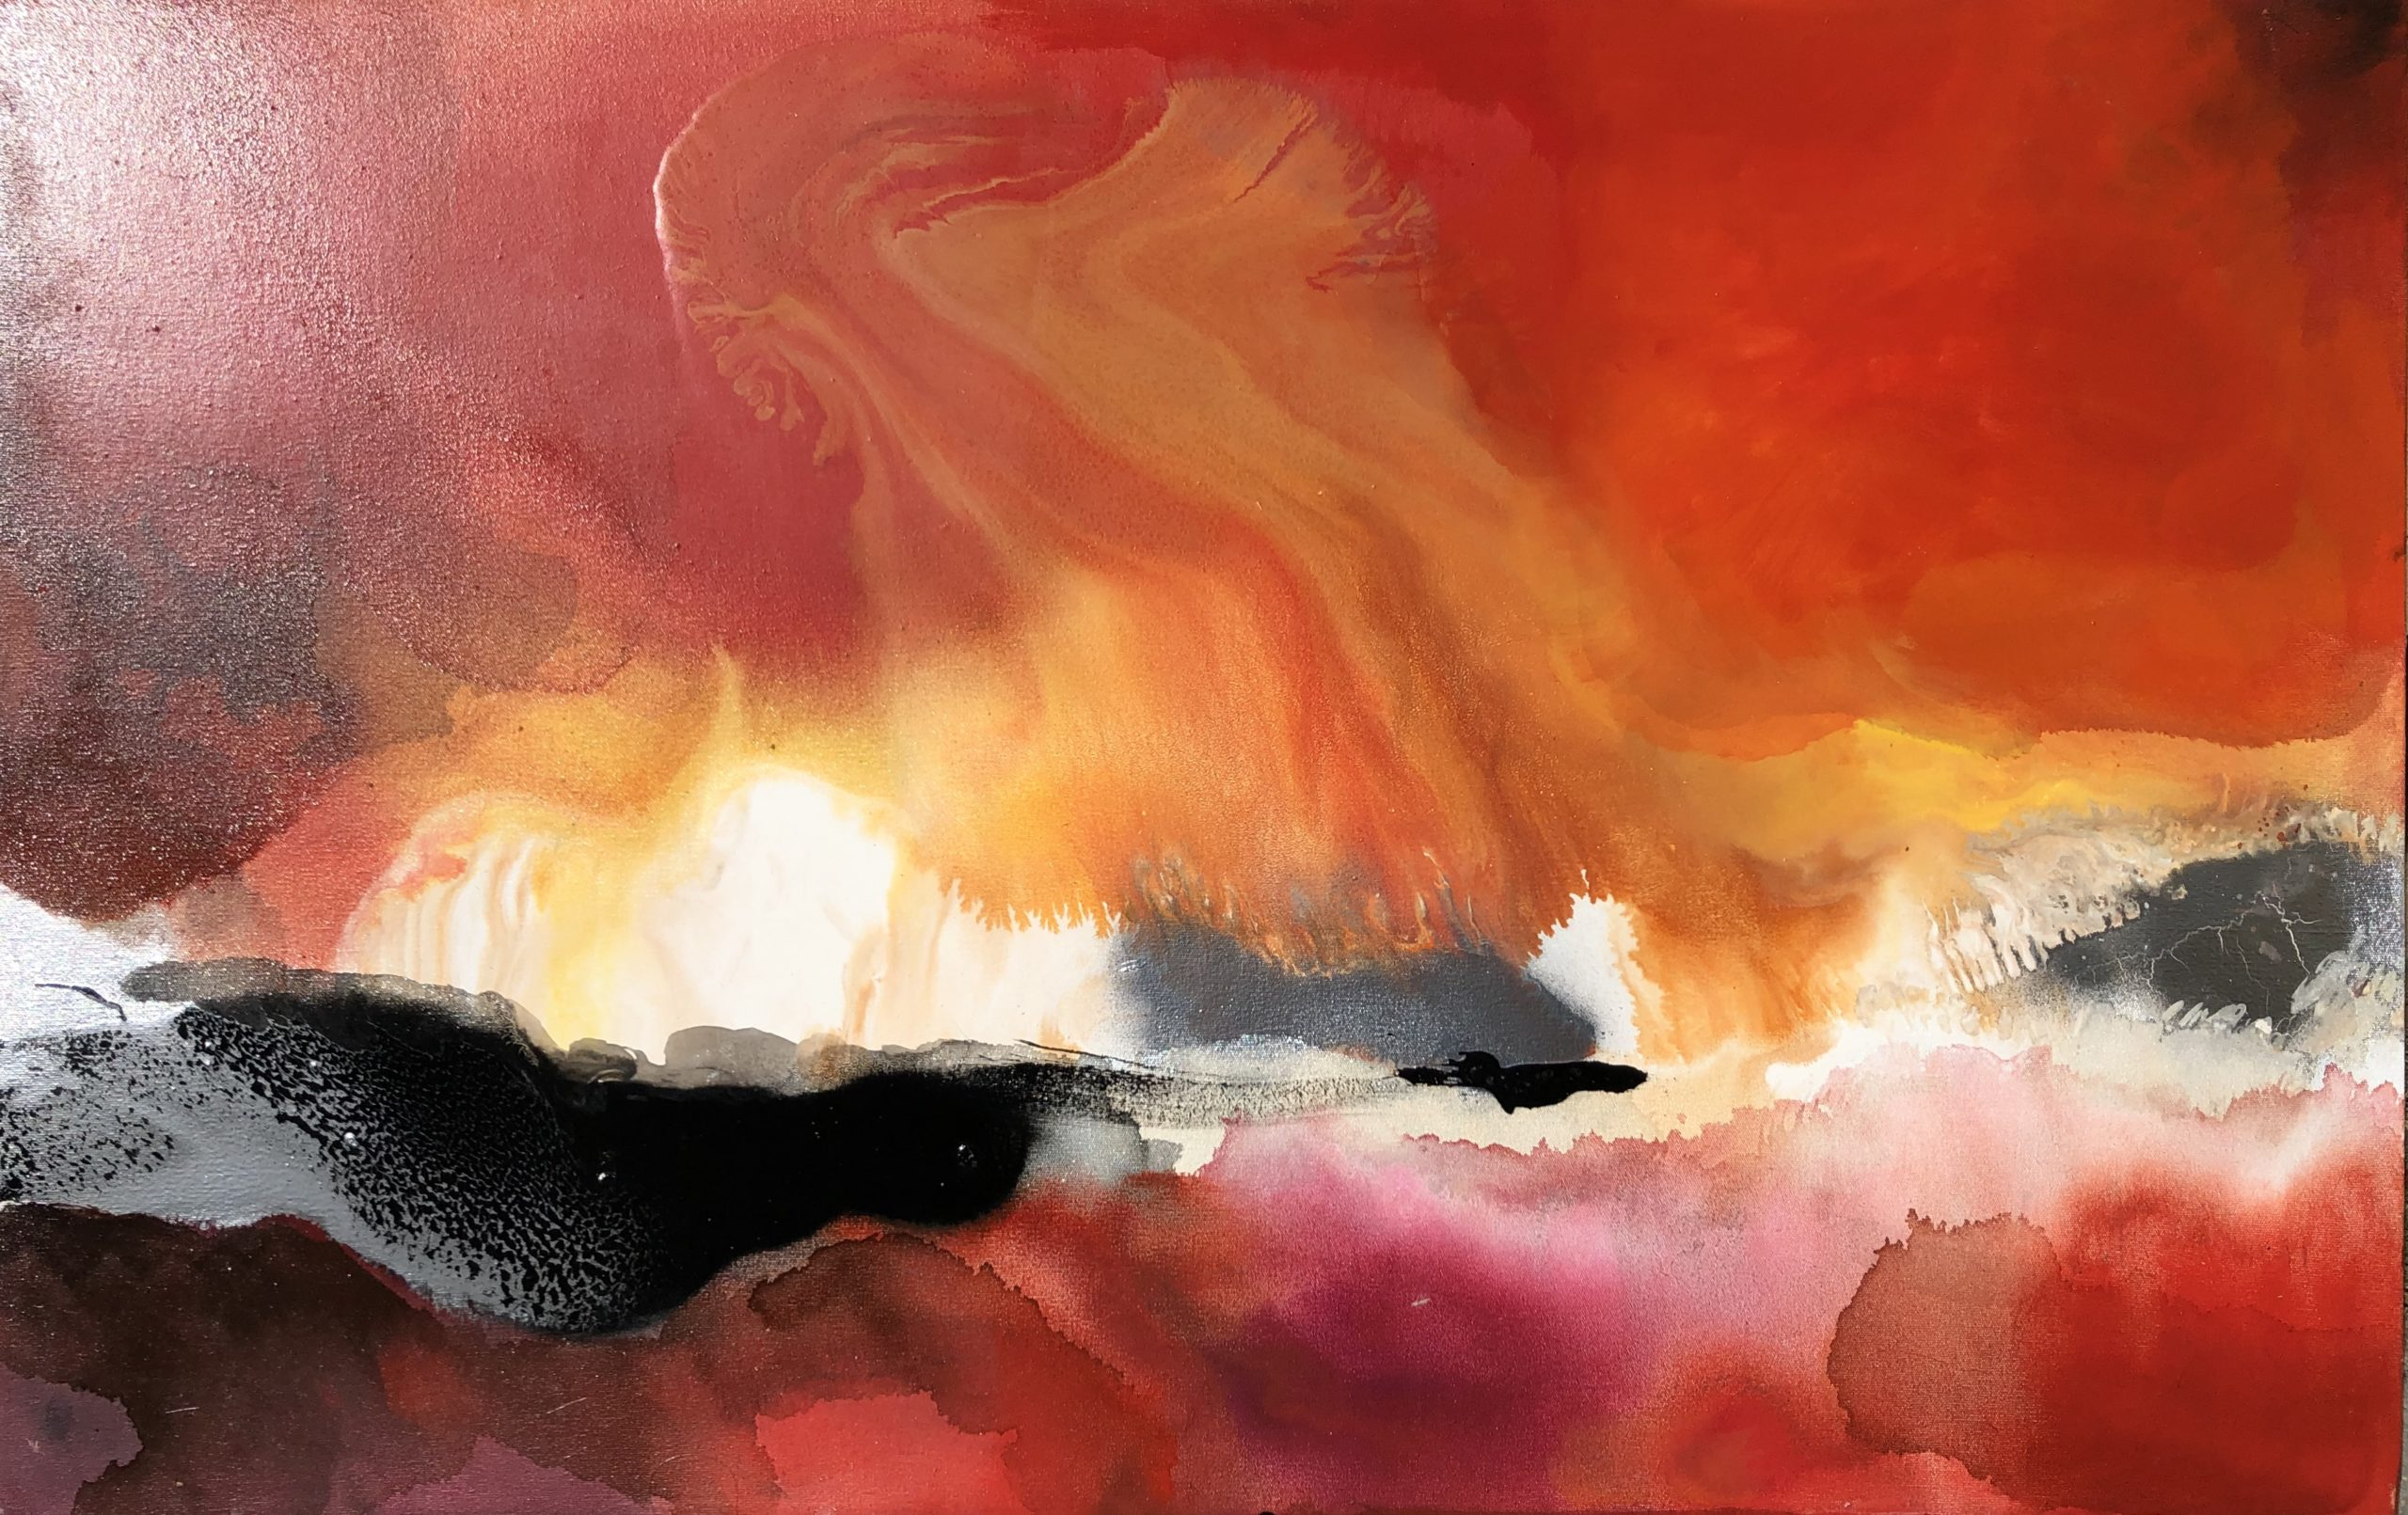 Vicky Sanders Abstract - Red Hot